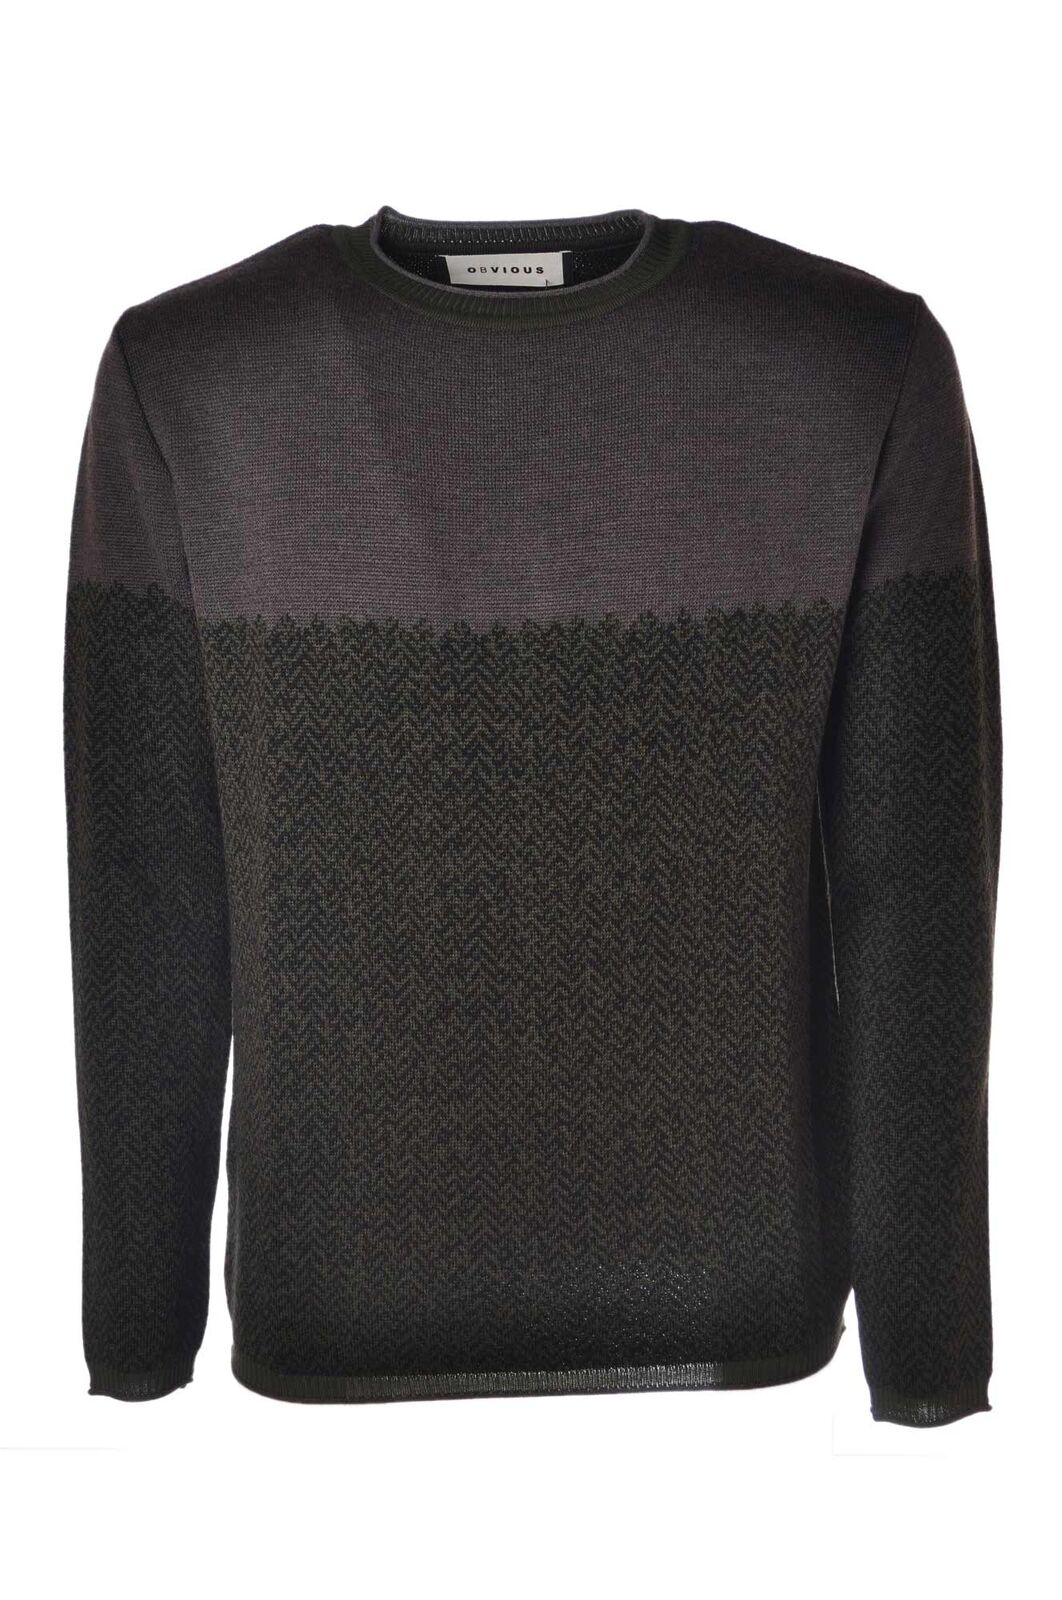 Obvious Basic  -  Sweaters - Male - Grau - 4383225A185525